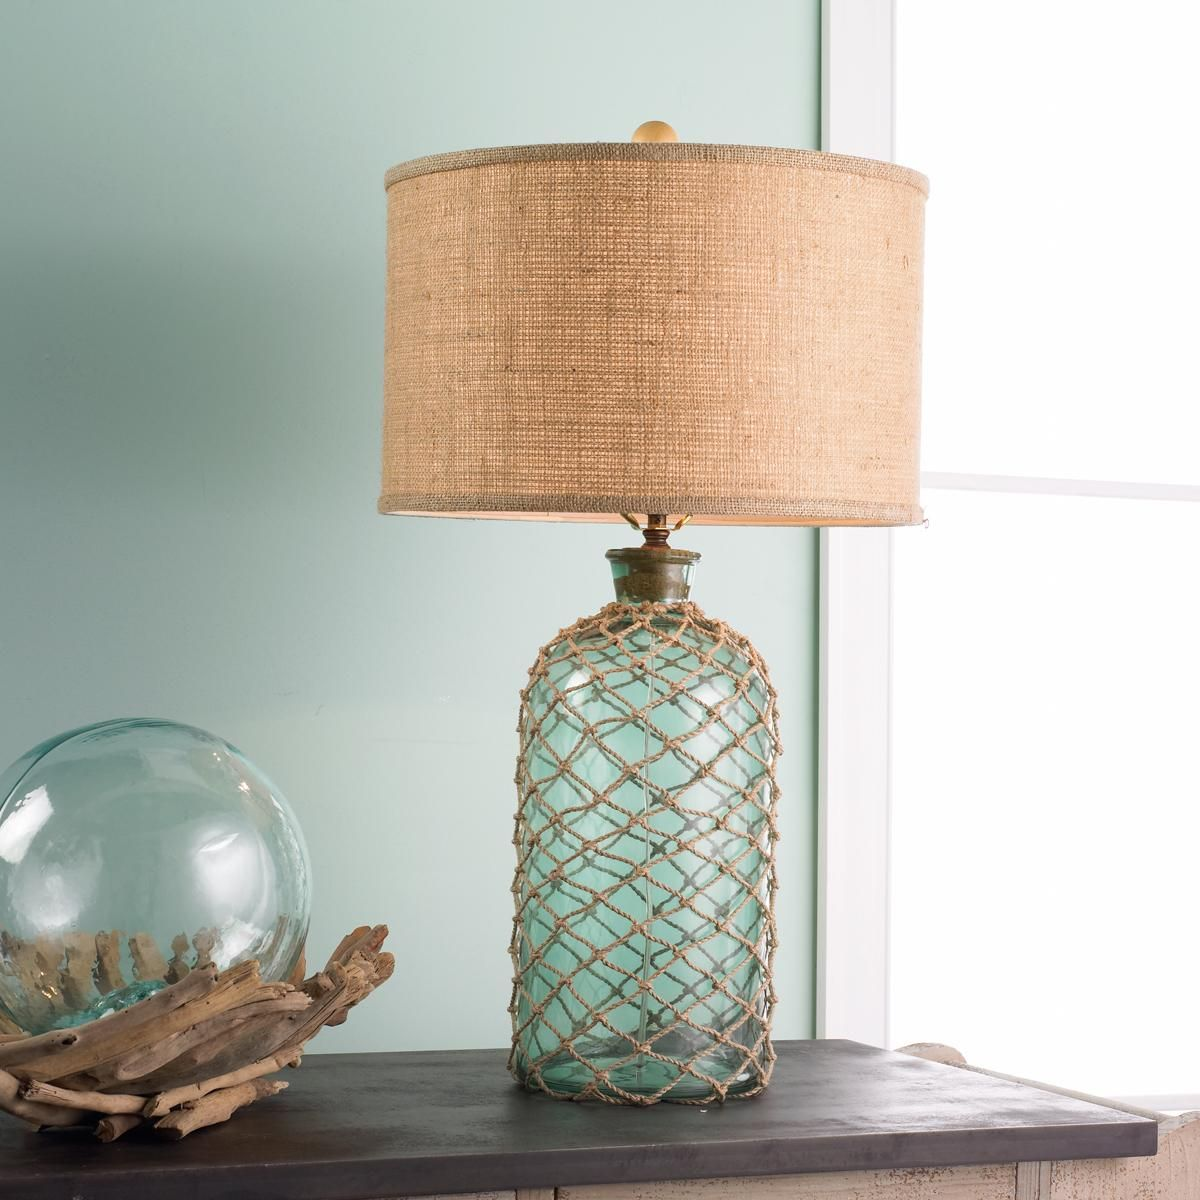 Green Glass Jug With Rope Netting Table Lampbeach Lovers And Fishing Friends Will Enjoy The Nautical Nod Fro Nautical Lamps Rustic Table Lamps Green Glass Jugs